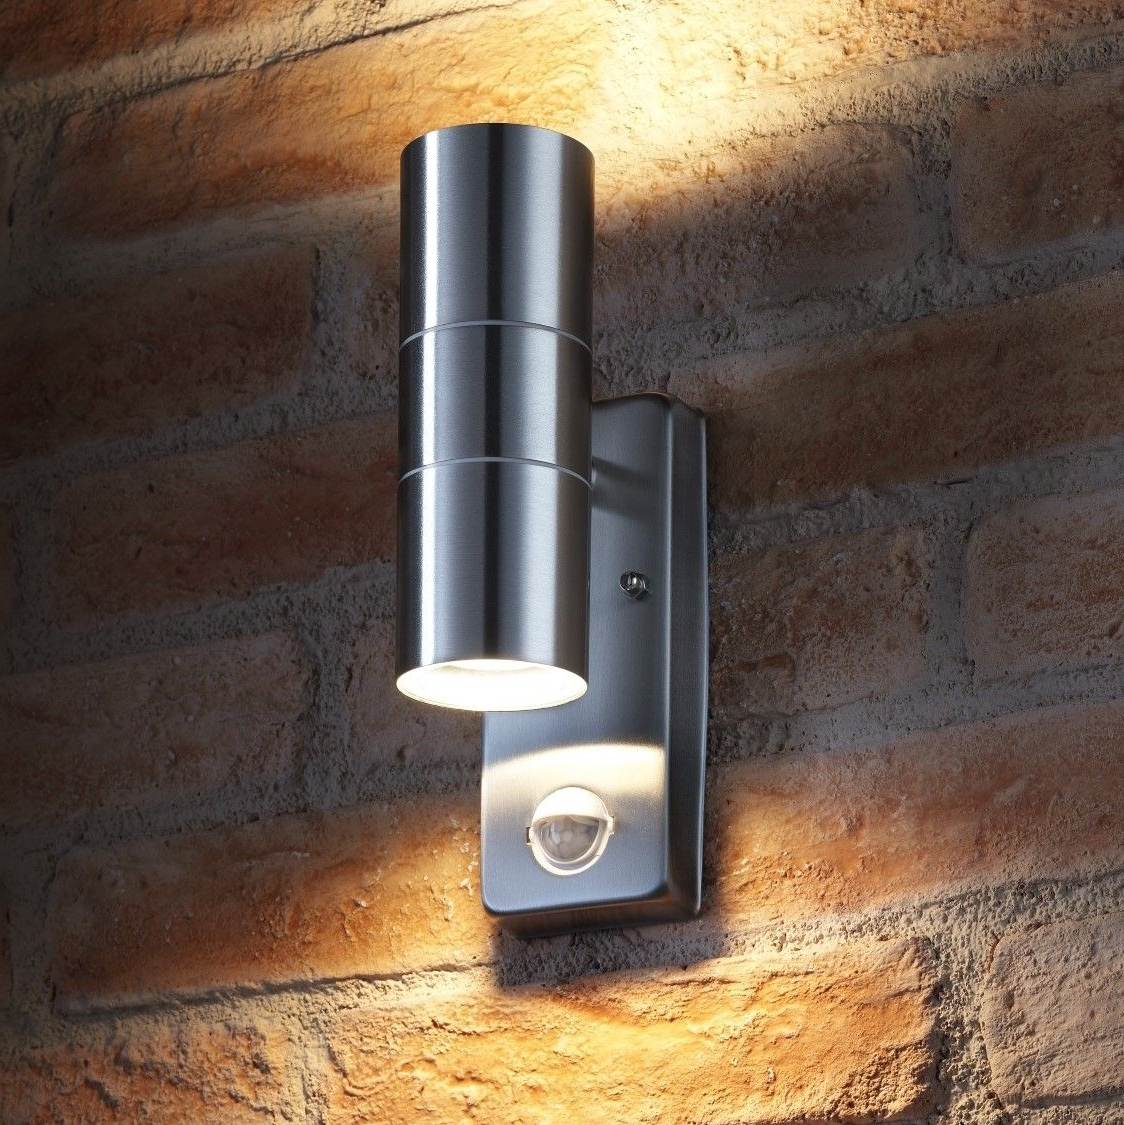 Auraglow Pir Motion Sensor Stainless Steel Up & Down Outdoor Wall For Most Up To Date Outdoor Led Wall Lights With Pir (View 12 of 20)